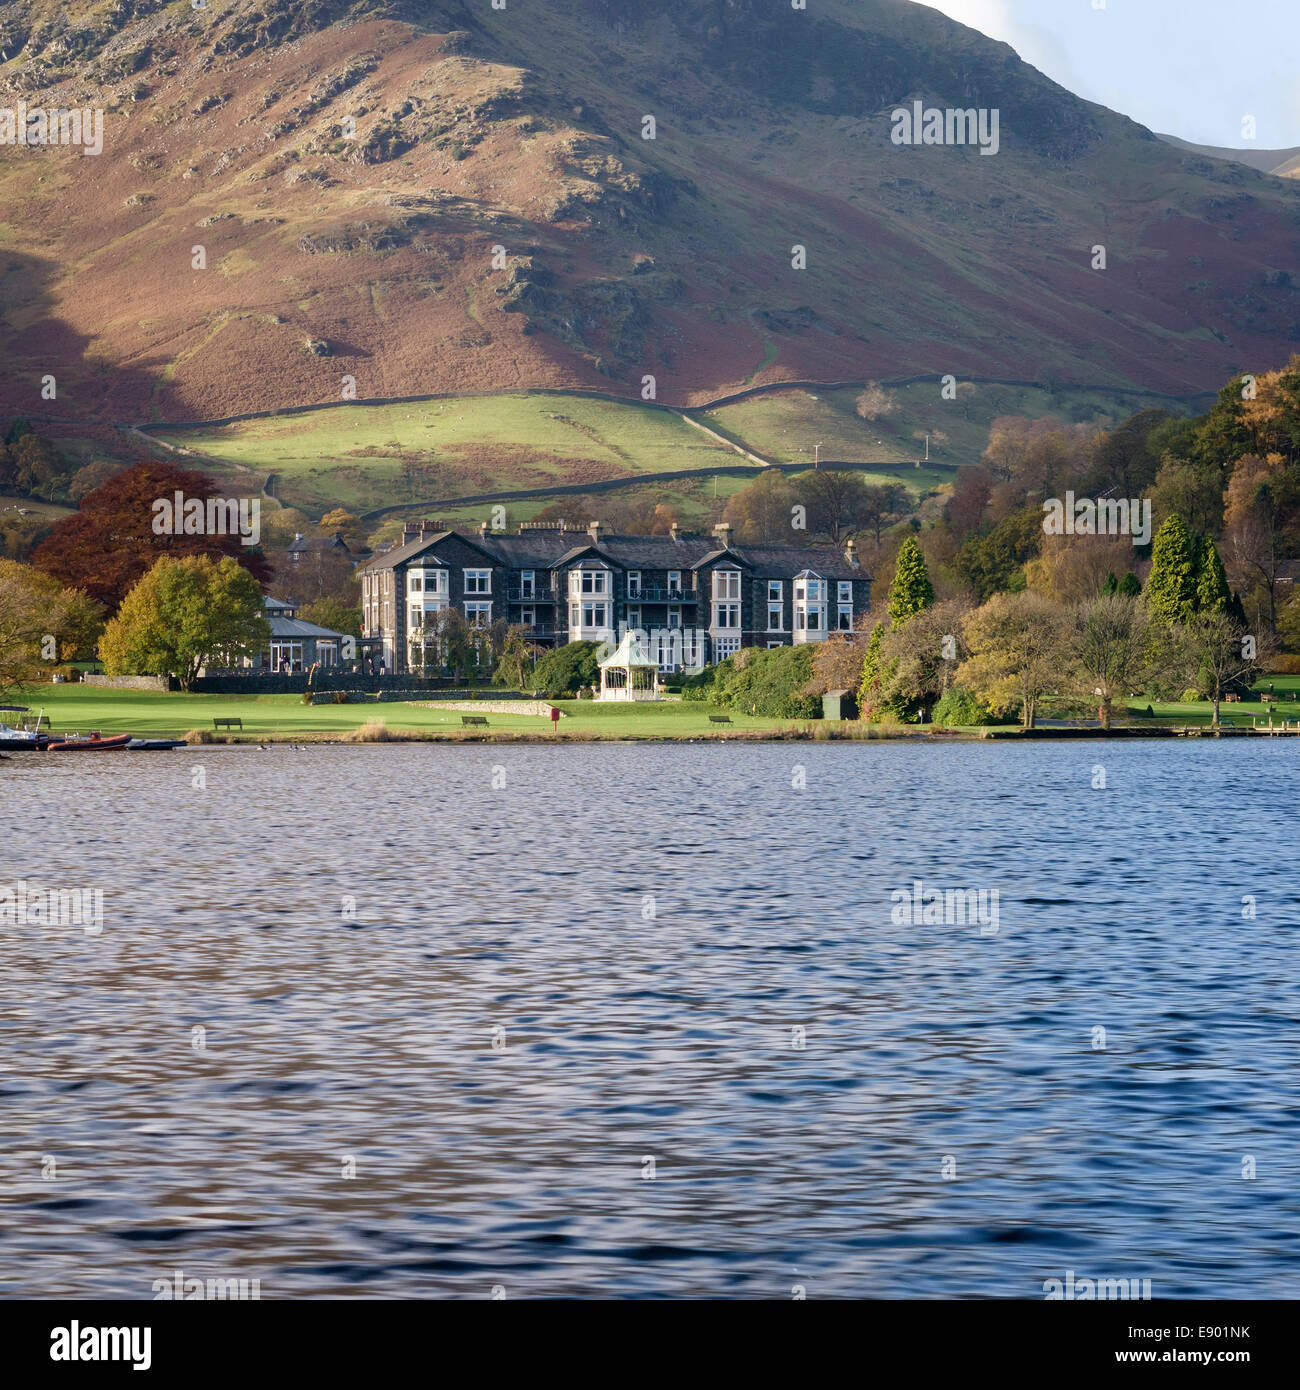 Inn on the Lake Hotel on the shores of Ullswater Lake in Glenridding, Lake District, Cumbria, England, UK Stock Photo